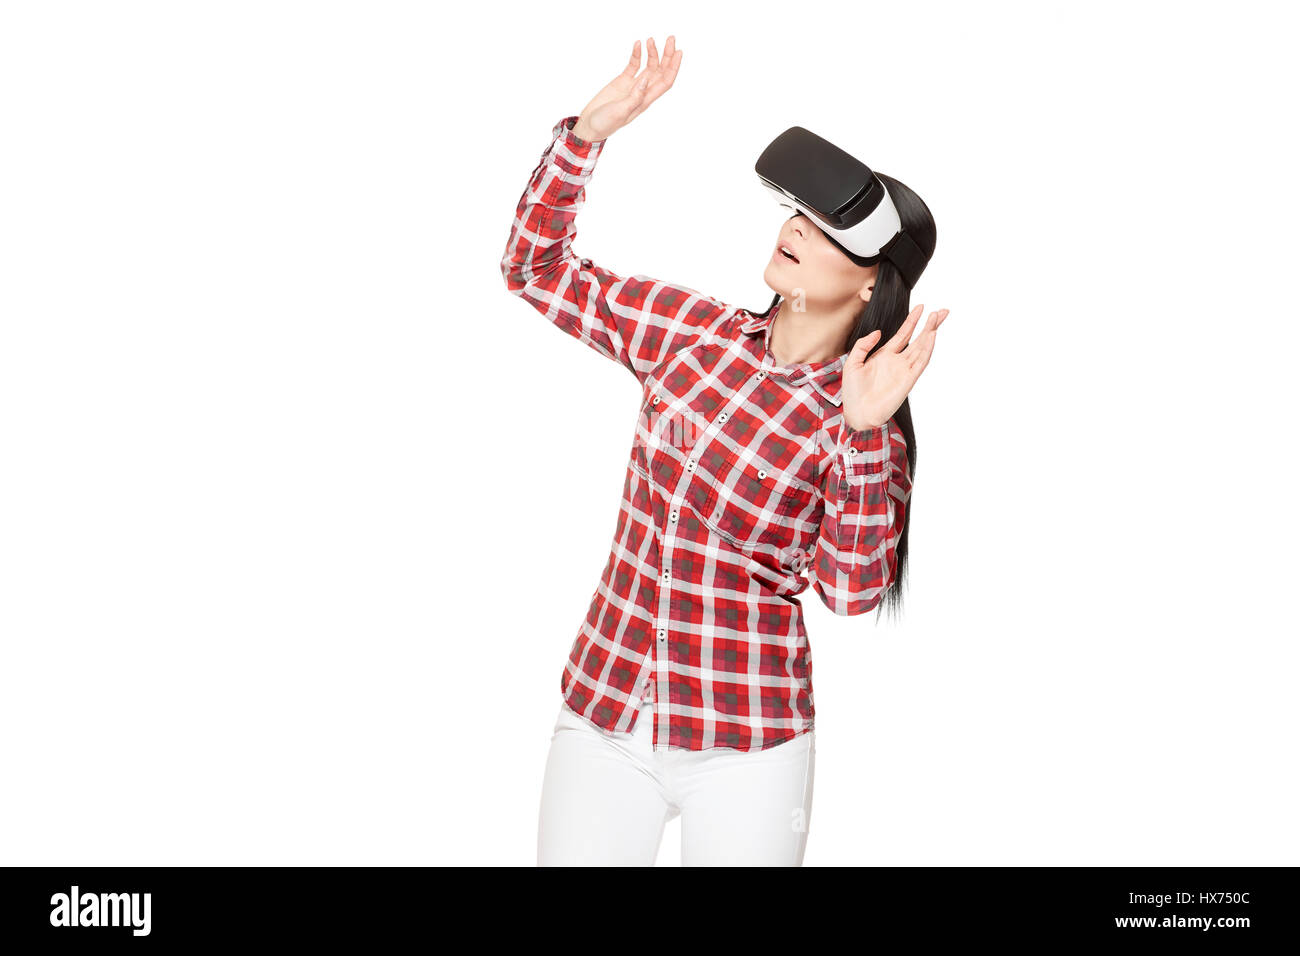 Shocked woman playing game in virtual reality and gesturing. - Stock Image